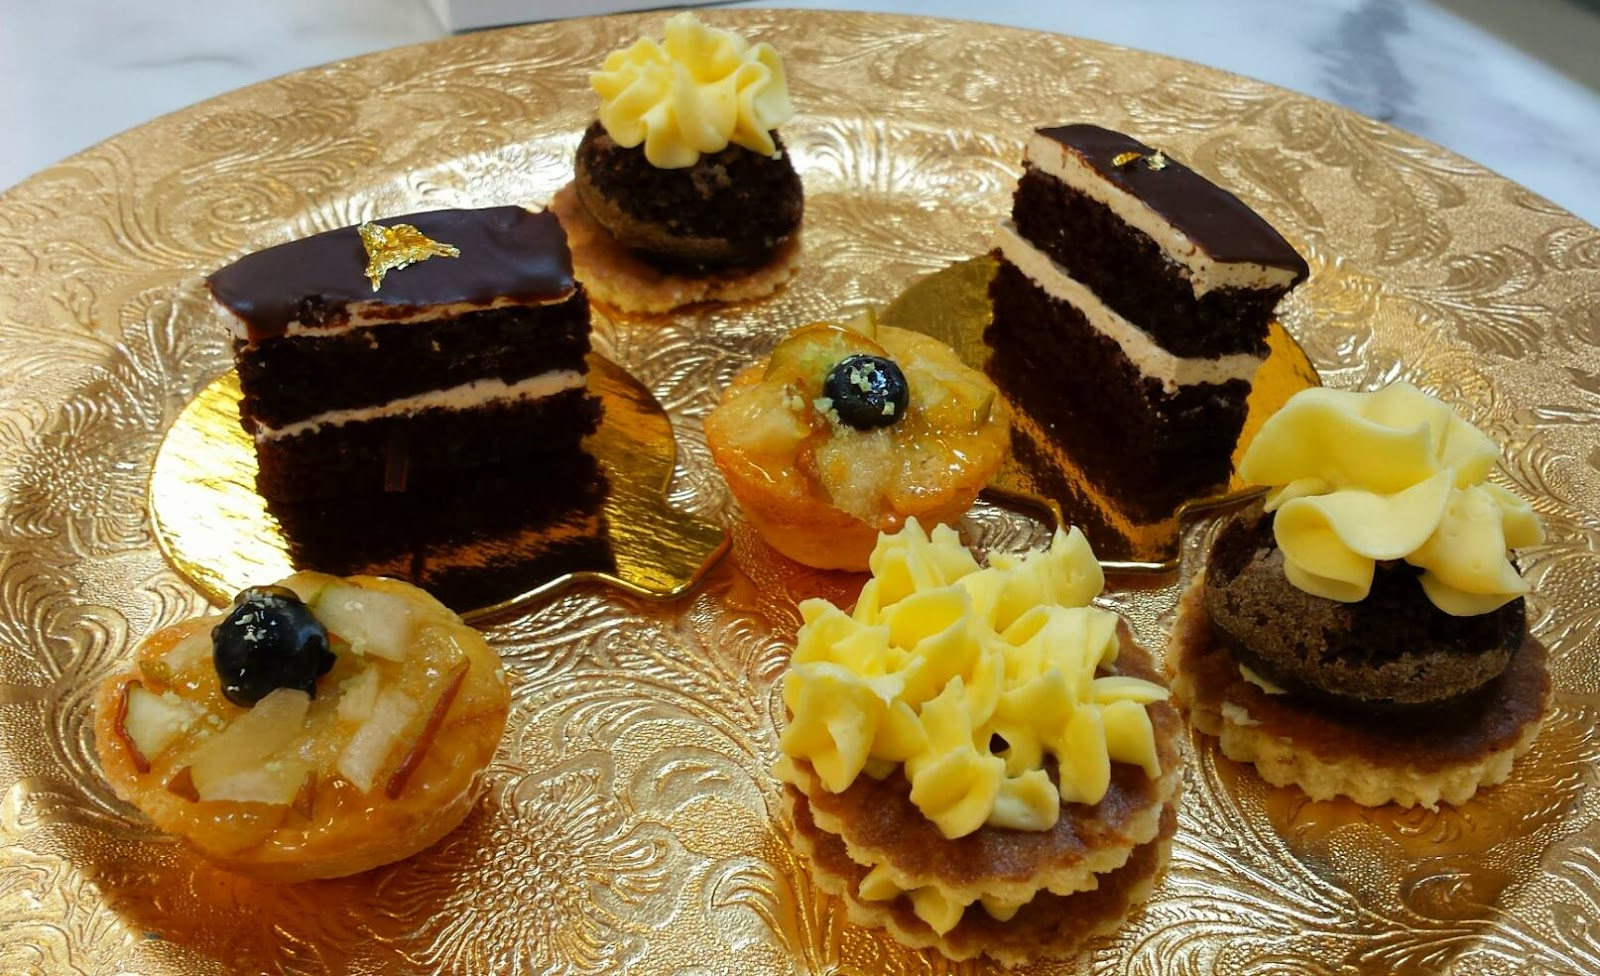 fetching free at home date ideas. dessert and food Date Ideas  Venues in Davenport Her Campus